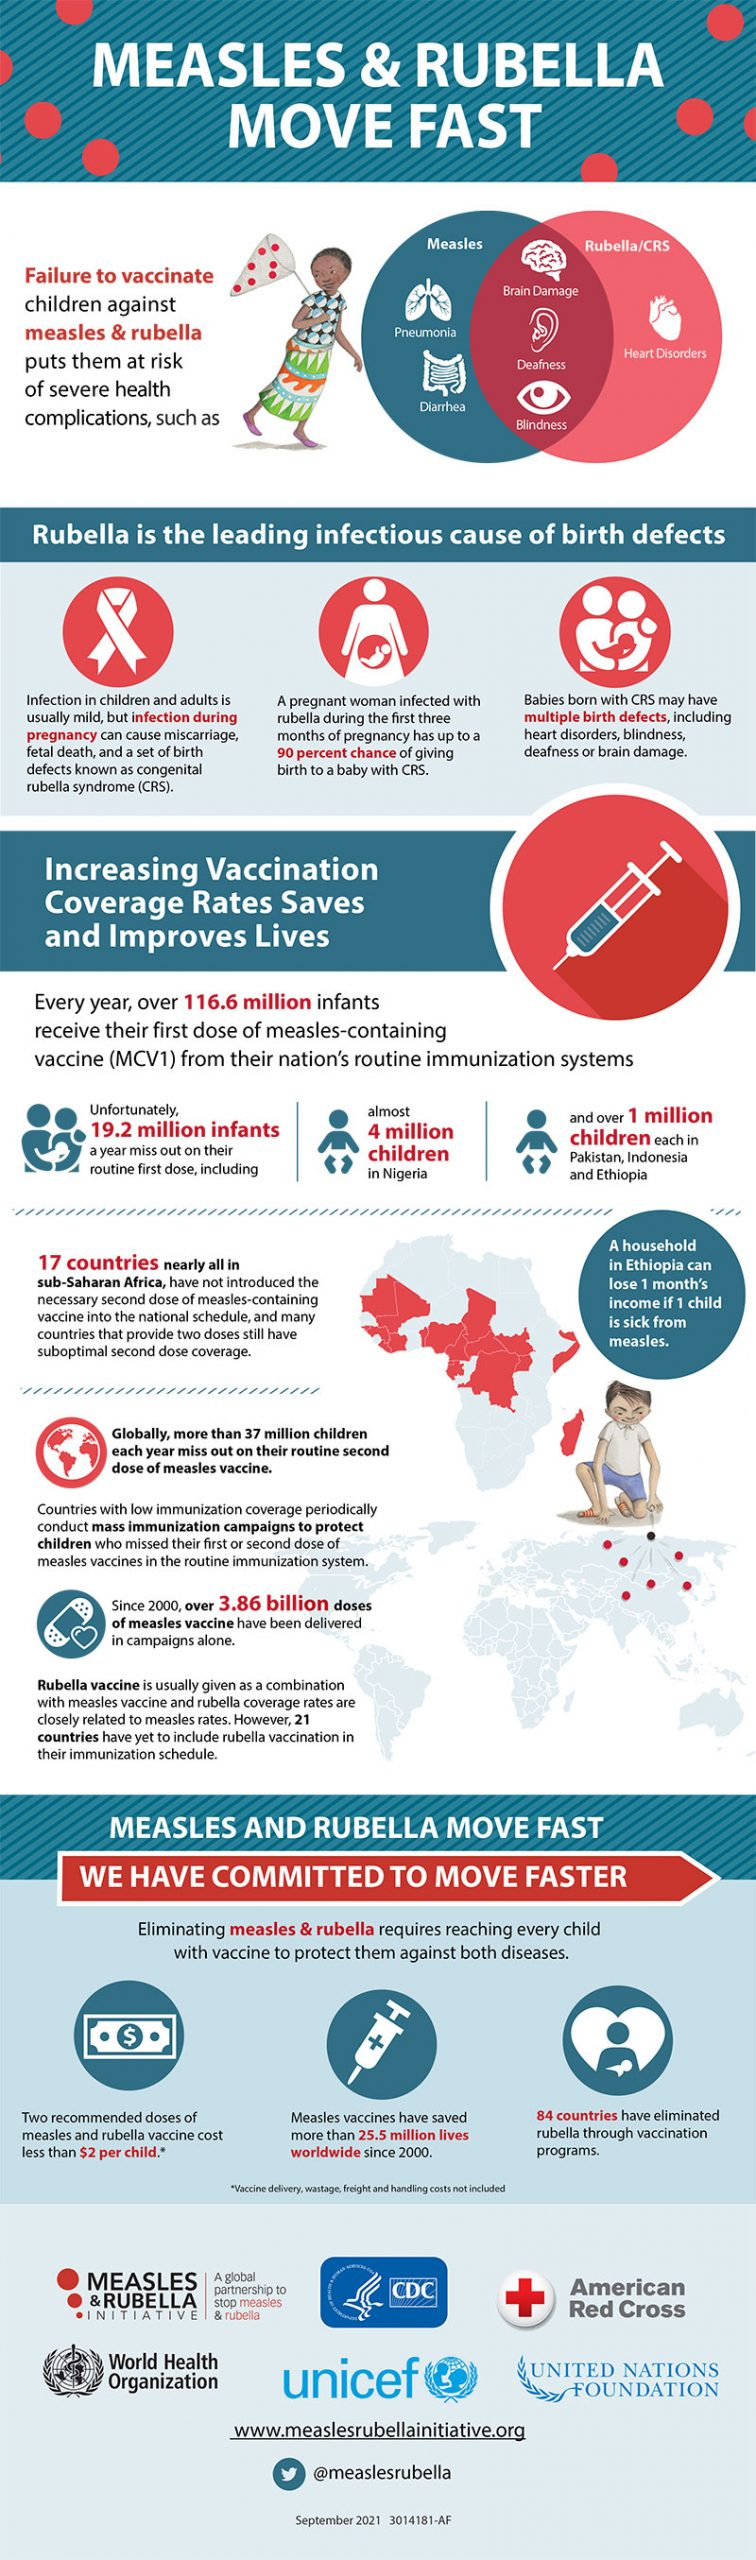 measles-rubella-infographic